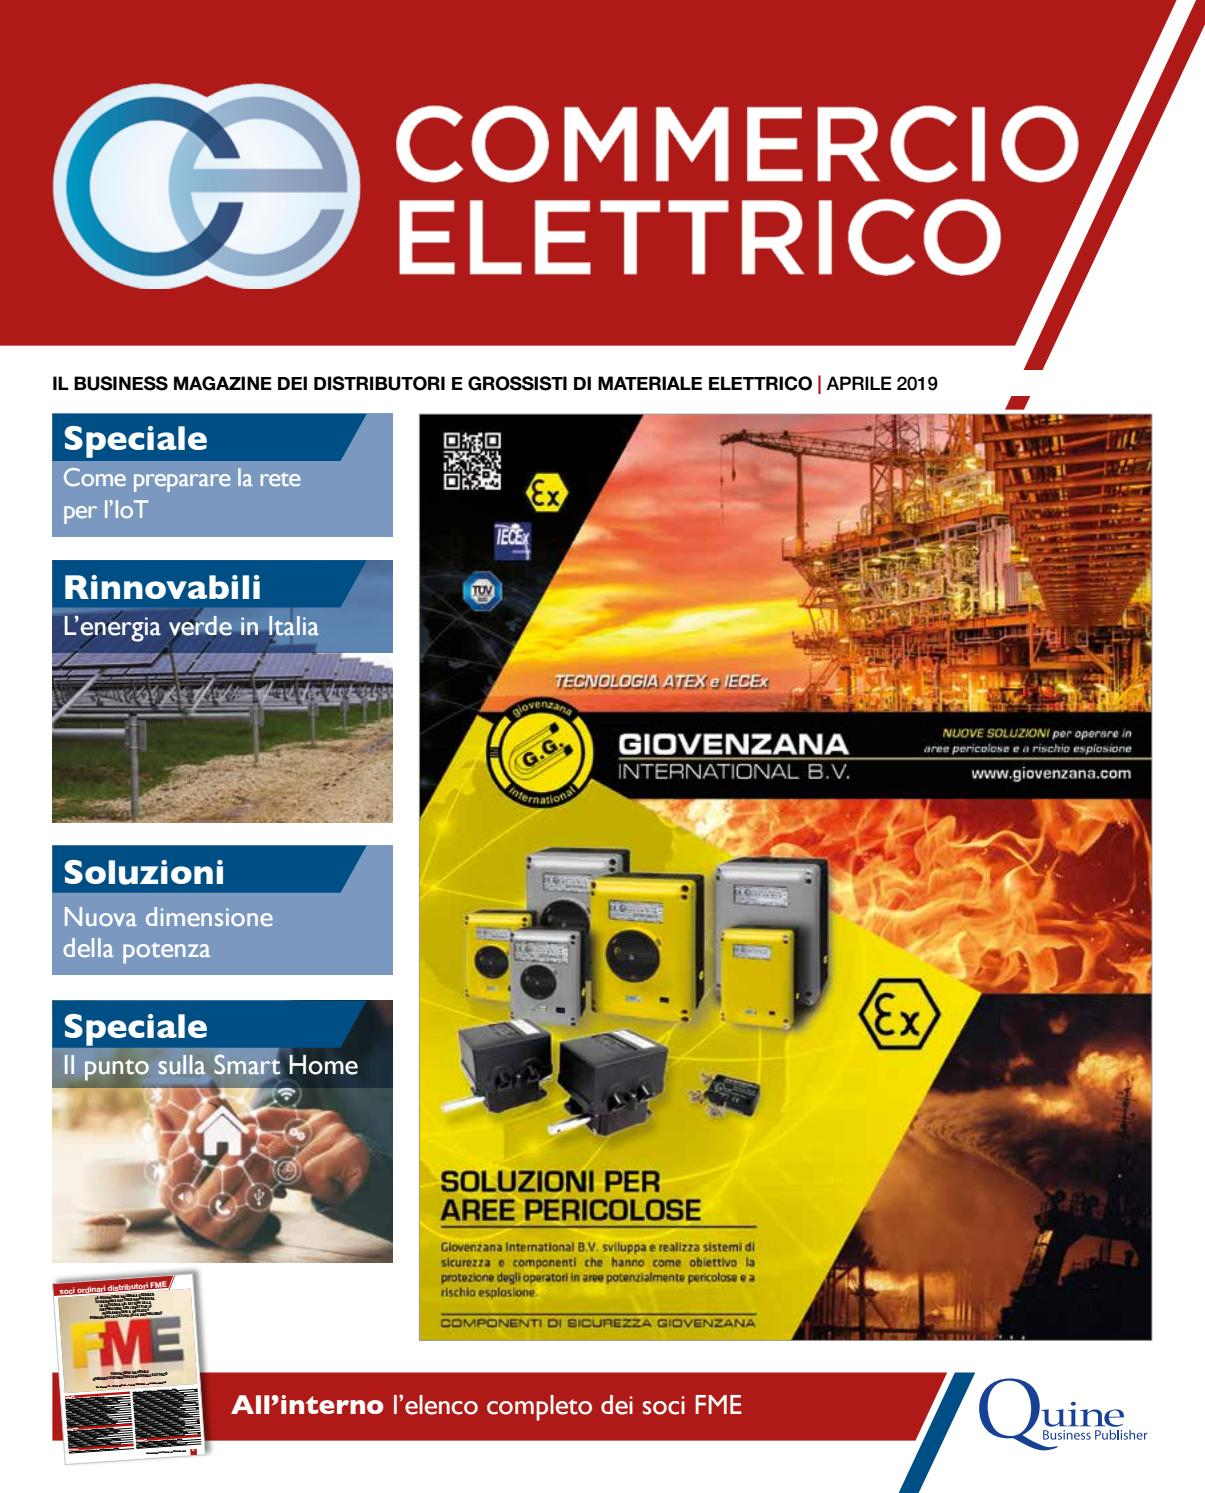 fc870a9719d1 Commercio Elettrico #3 – Aprile 2019 by Quine Business Publisher - issuu